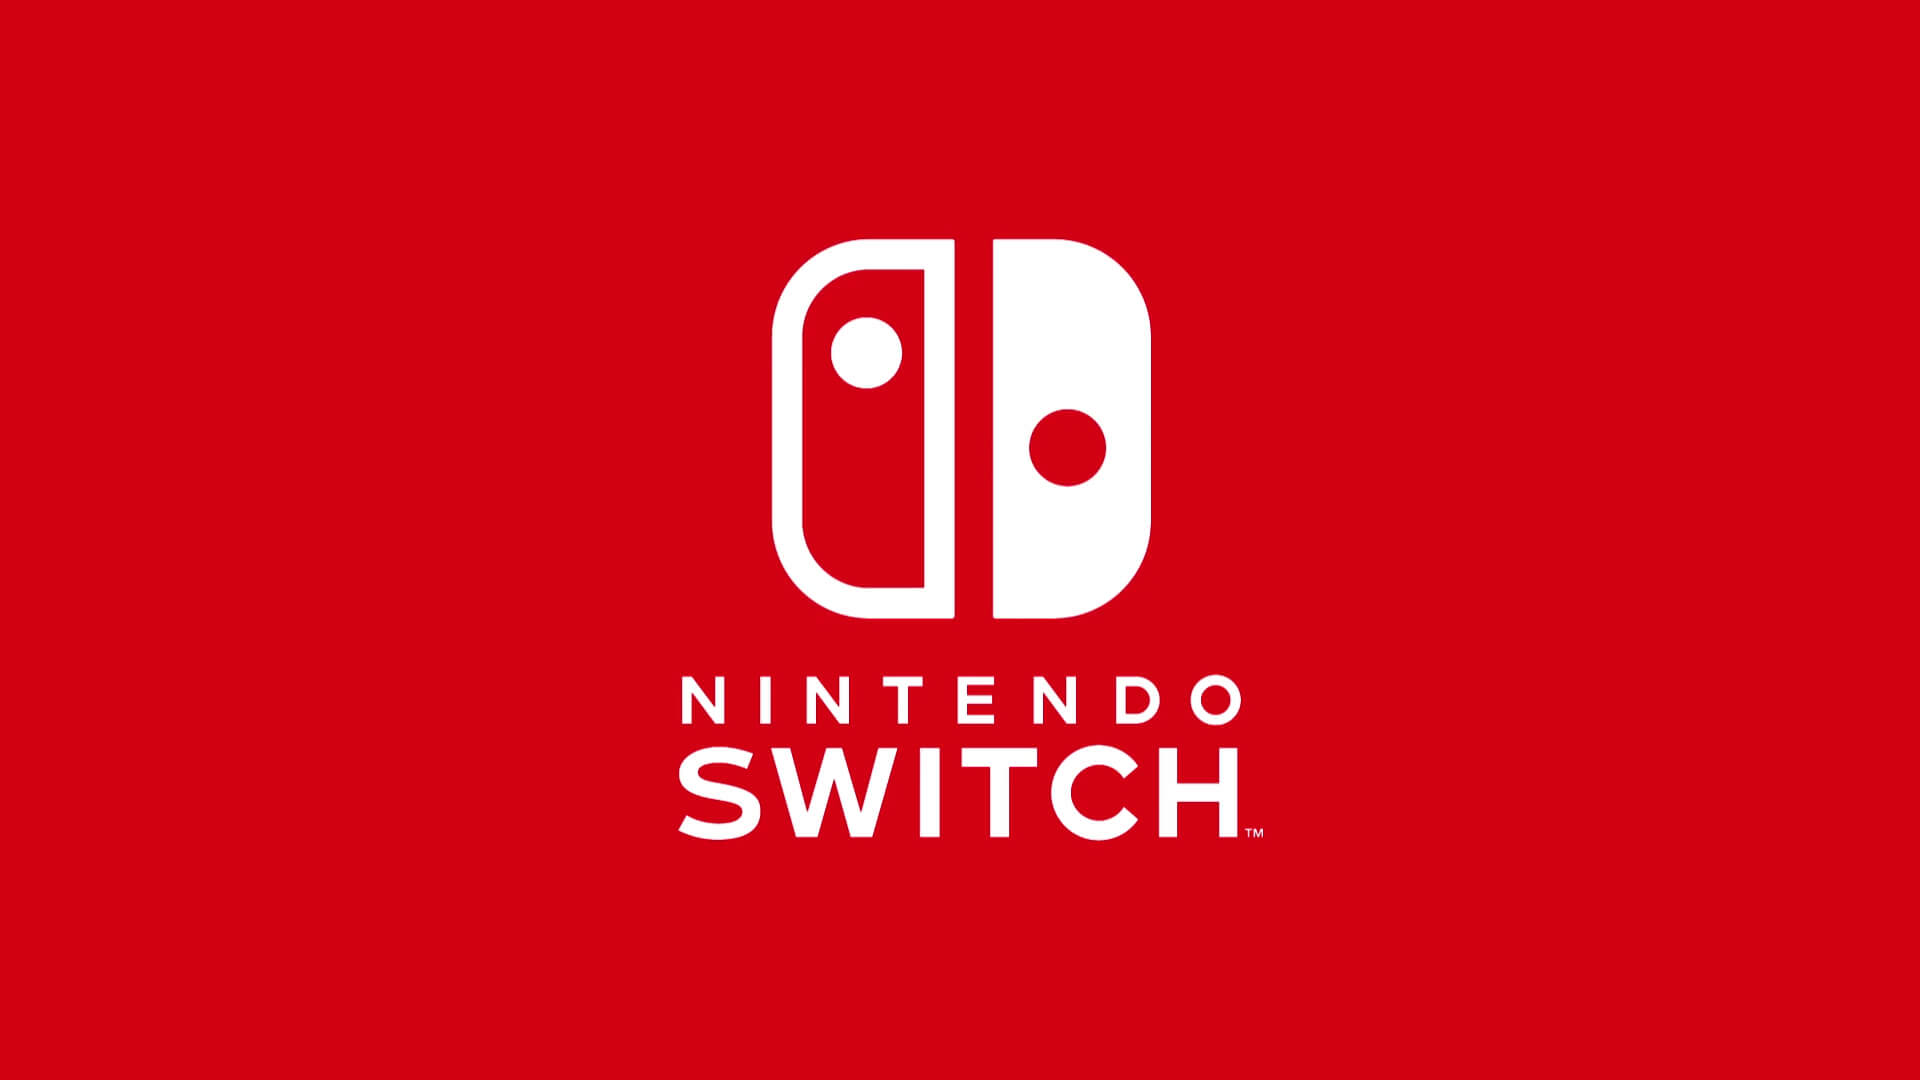 Do You Want To Work At Nintendo?